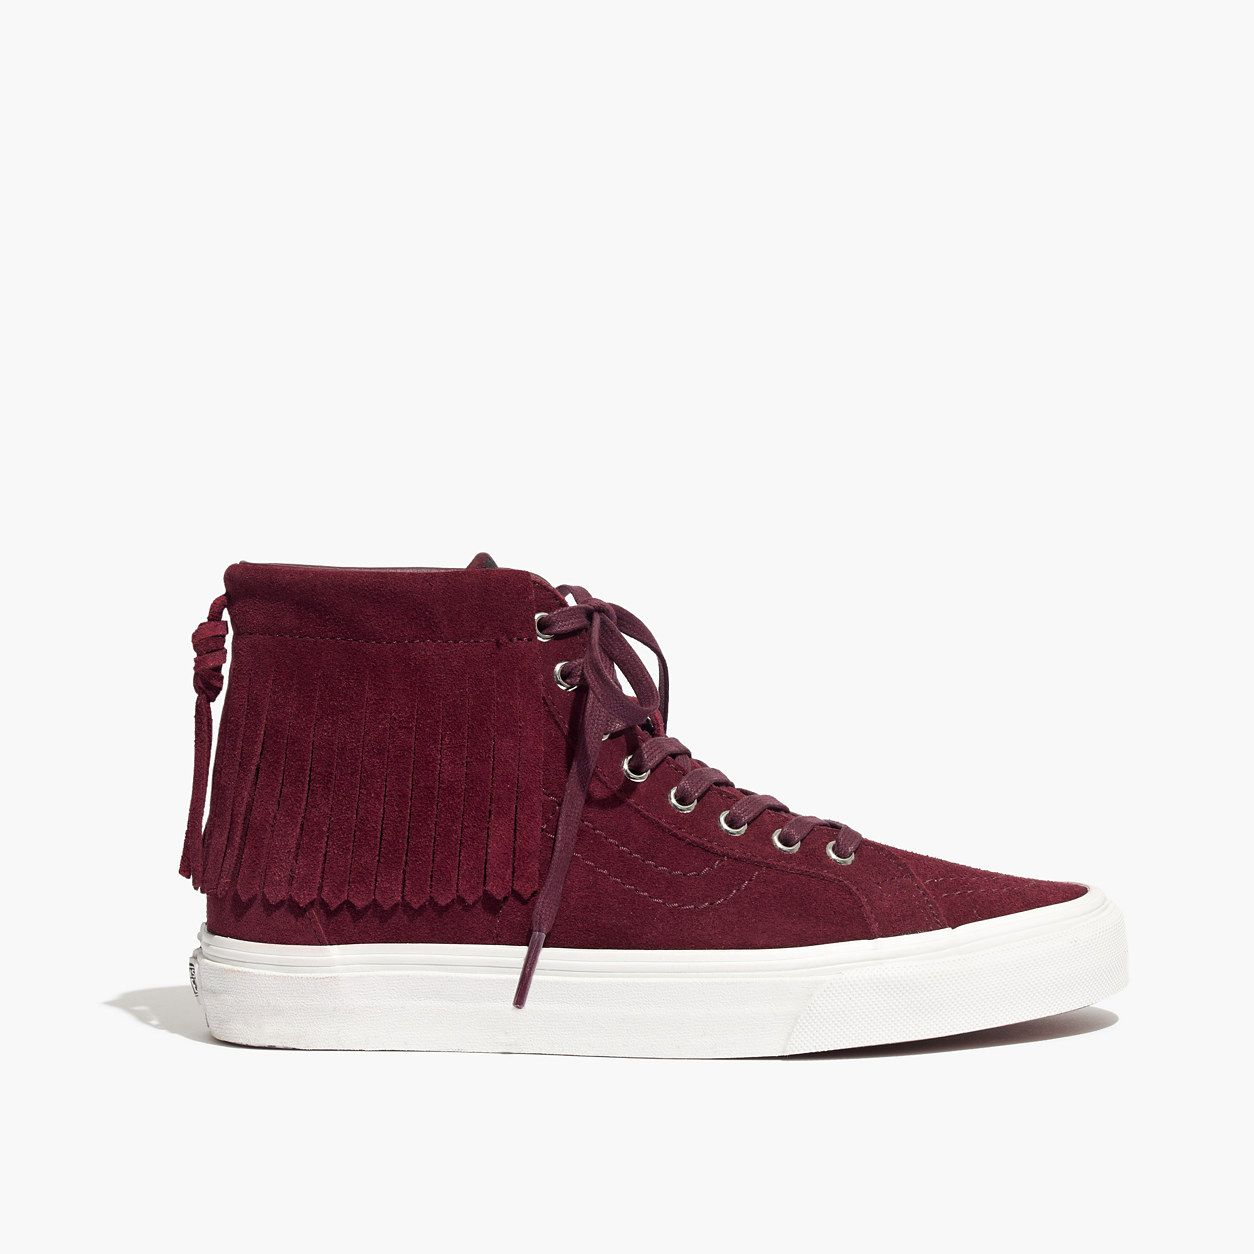 19bad9a66ce0 Madewell Vans Sk8-Hi Moccasin High-Top Sneakers